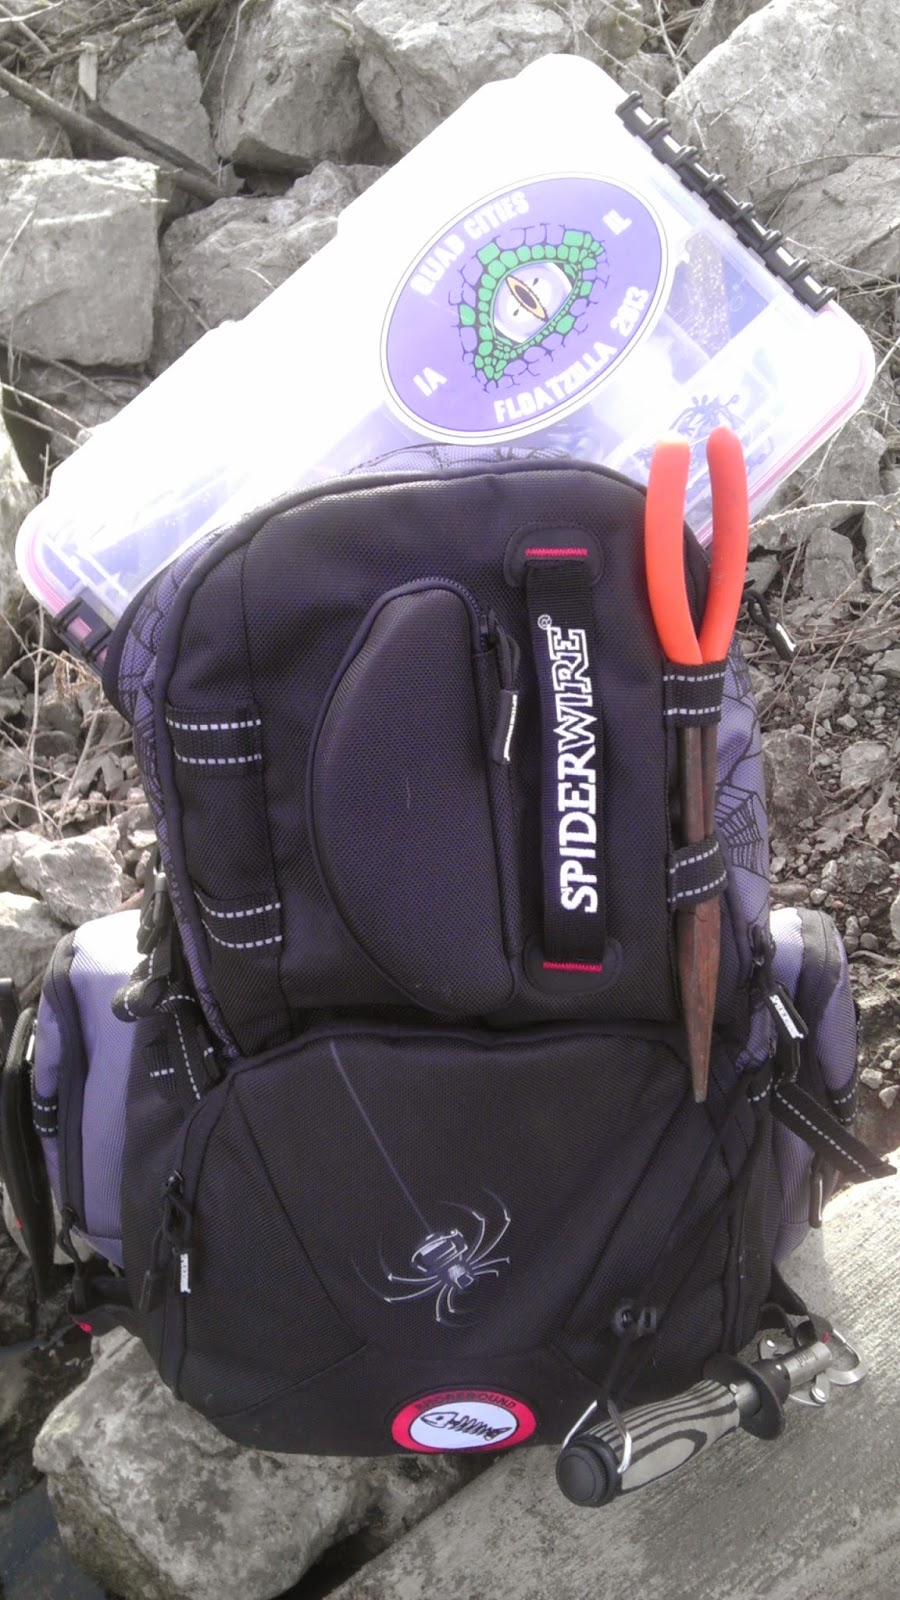 Israel dunn human powered angling spiderwire utility for Spiderwire fishing backpack